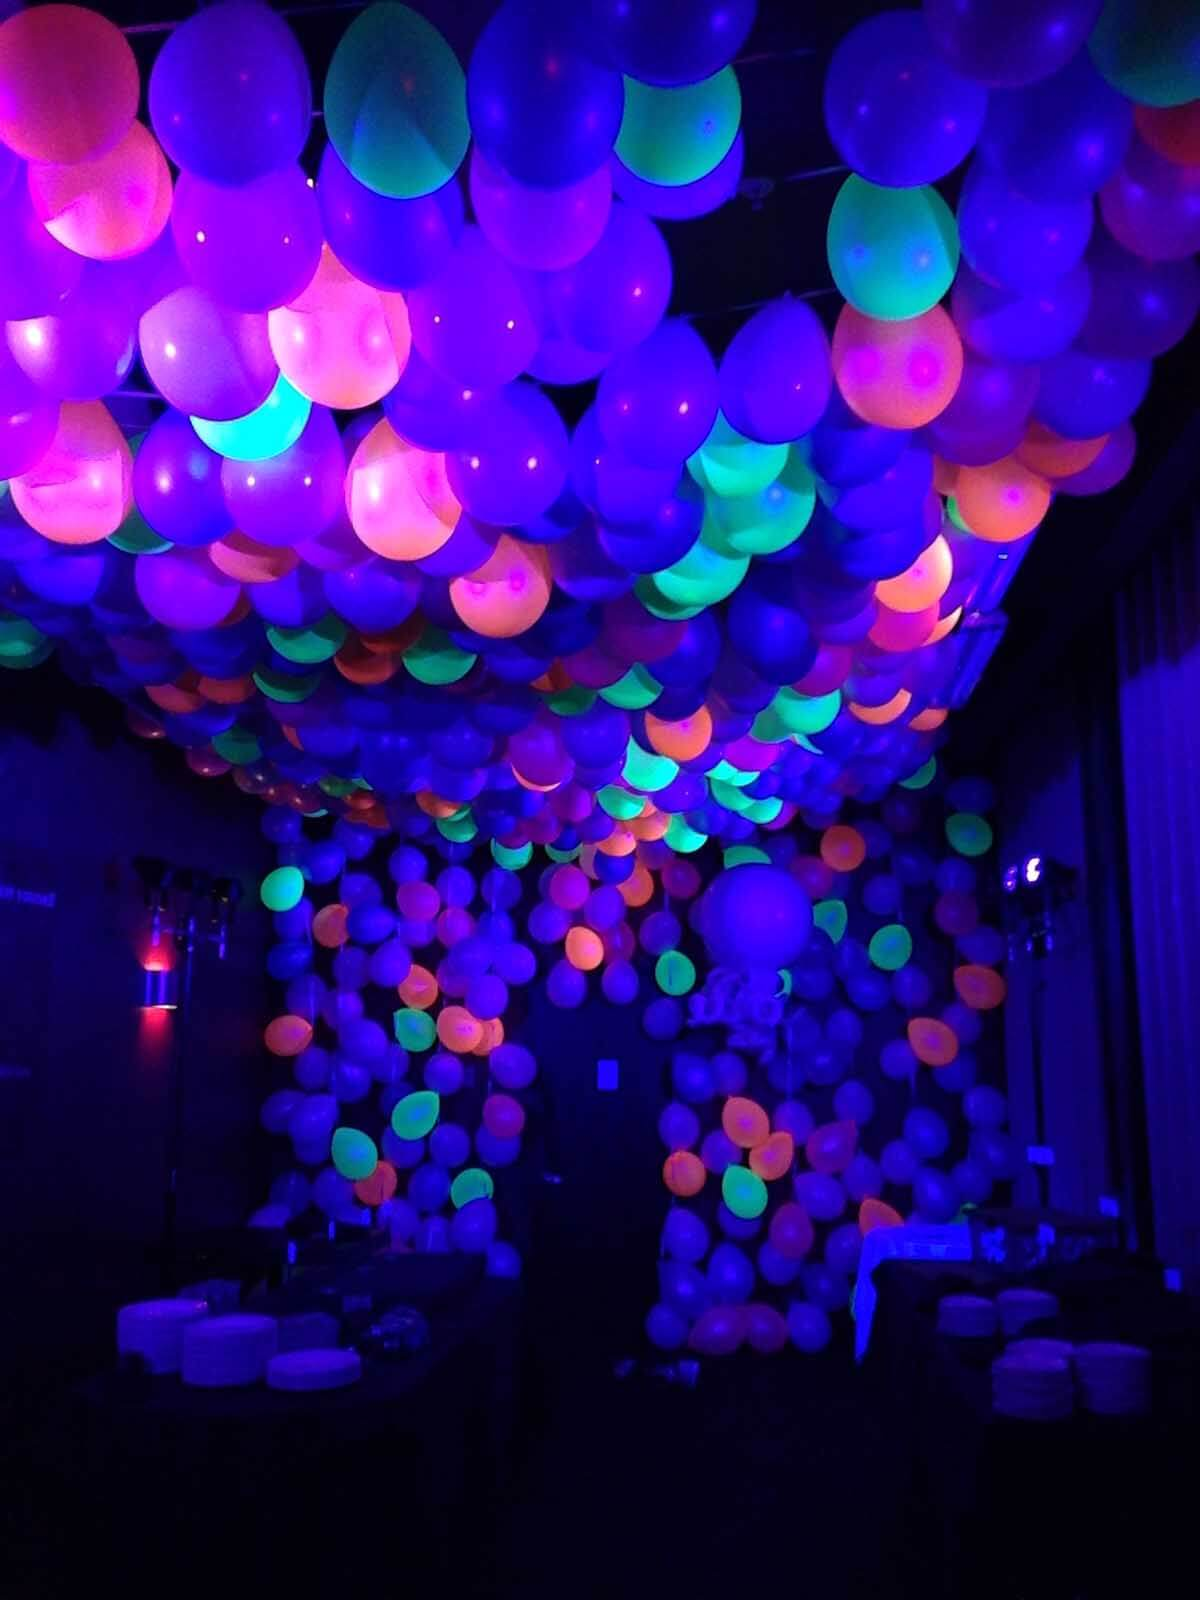 45 Glow In The Dark Party Ideas Neon Night Glow Party